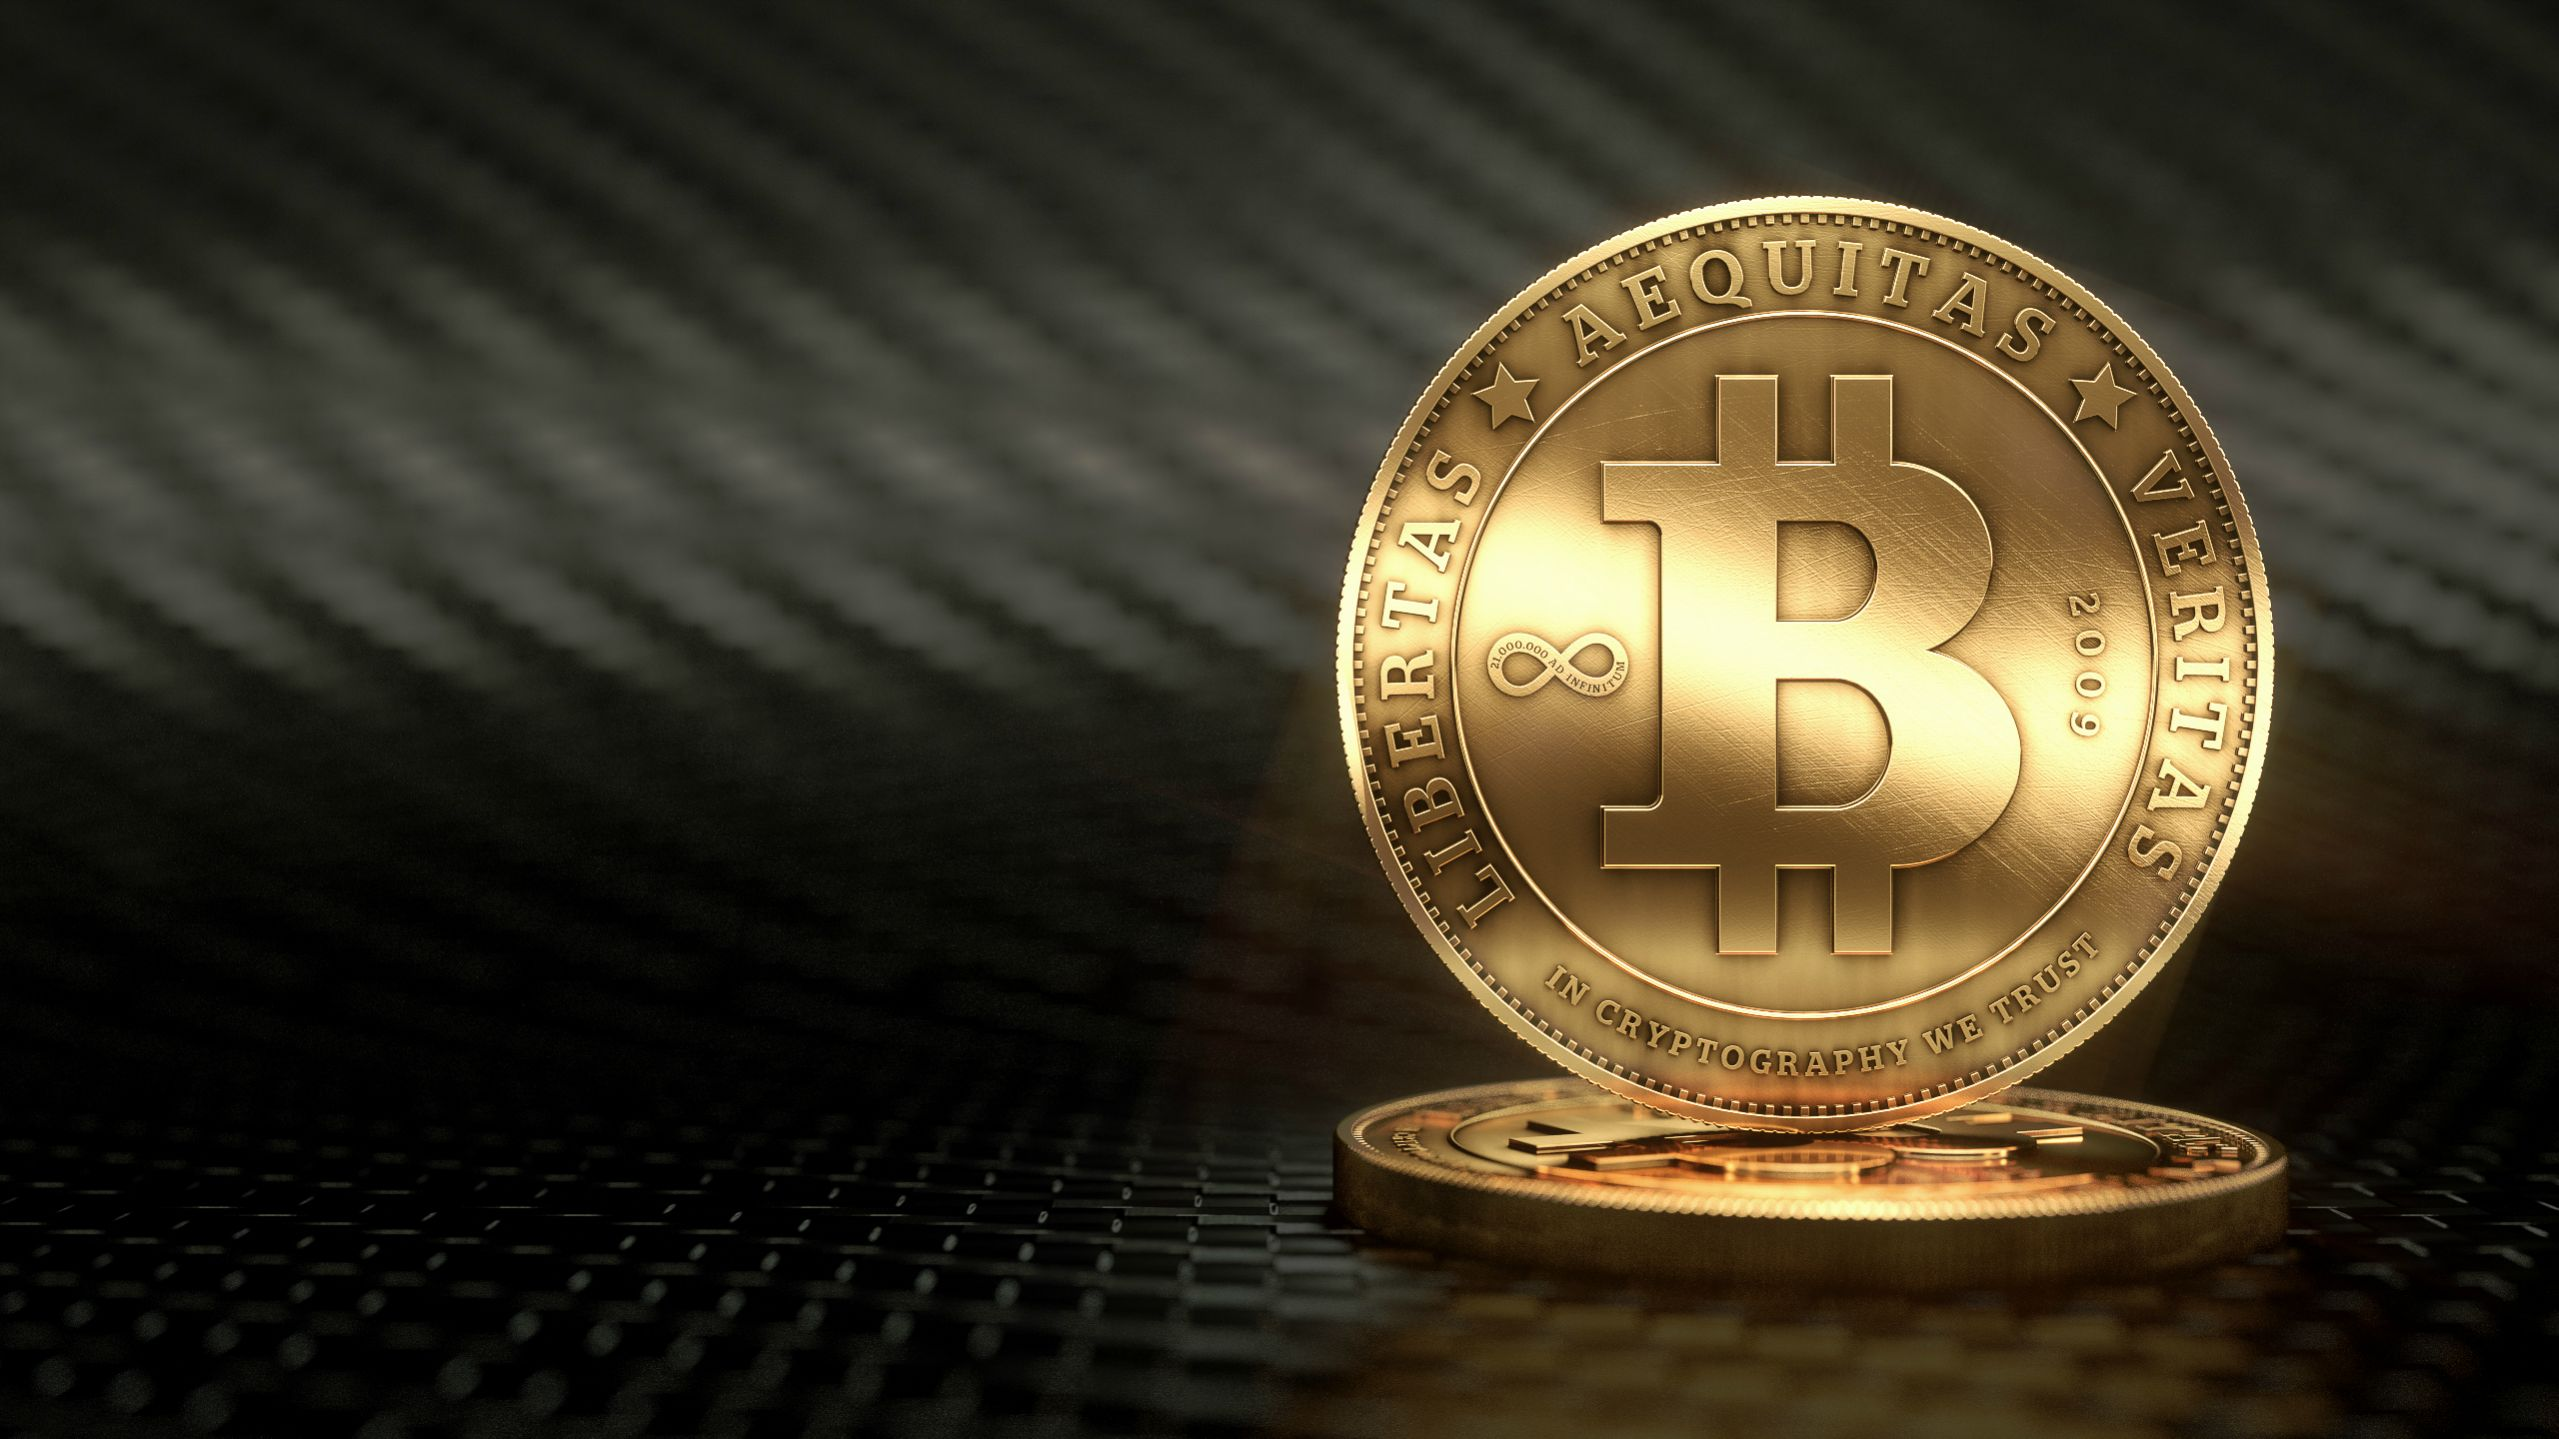 So Is Bitcoin Actually Safe To Invest In?